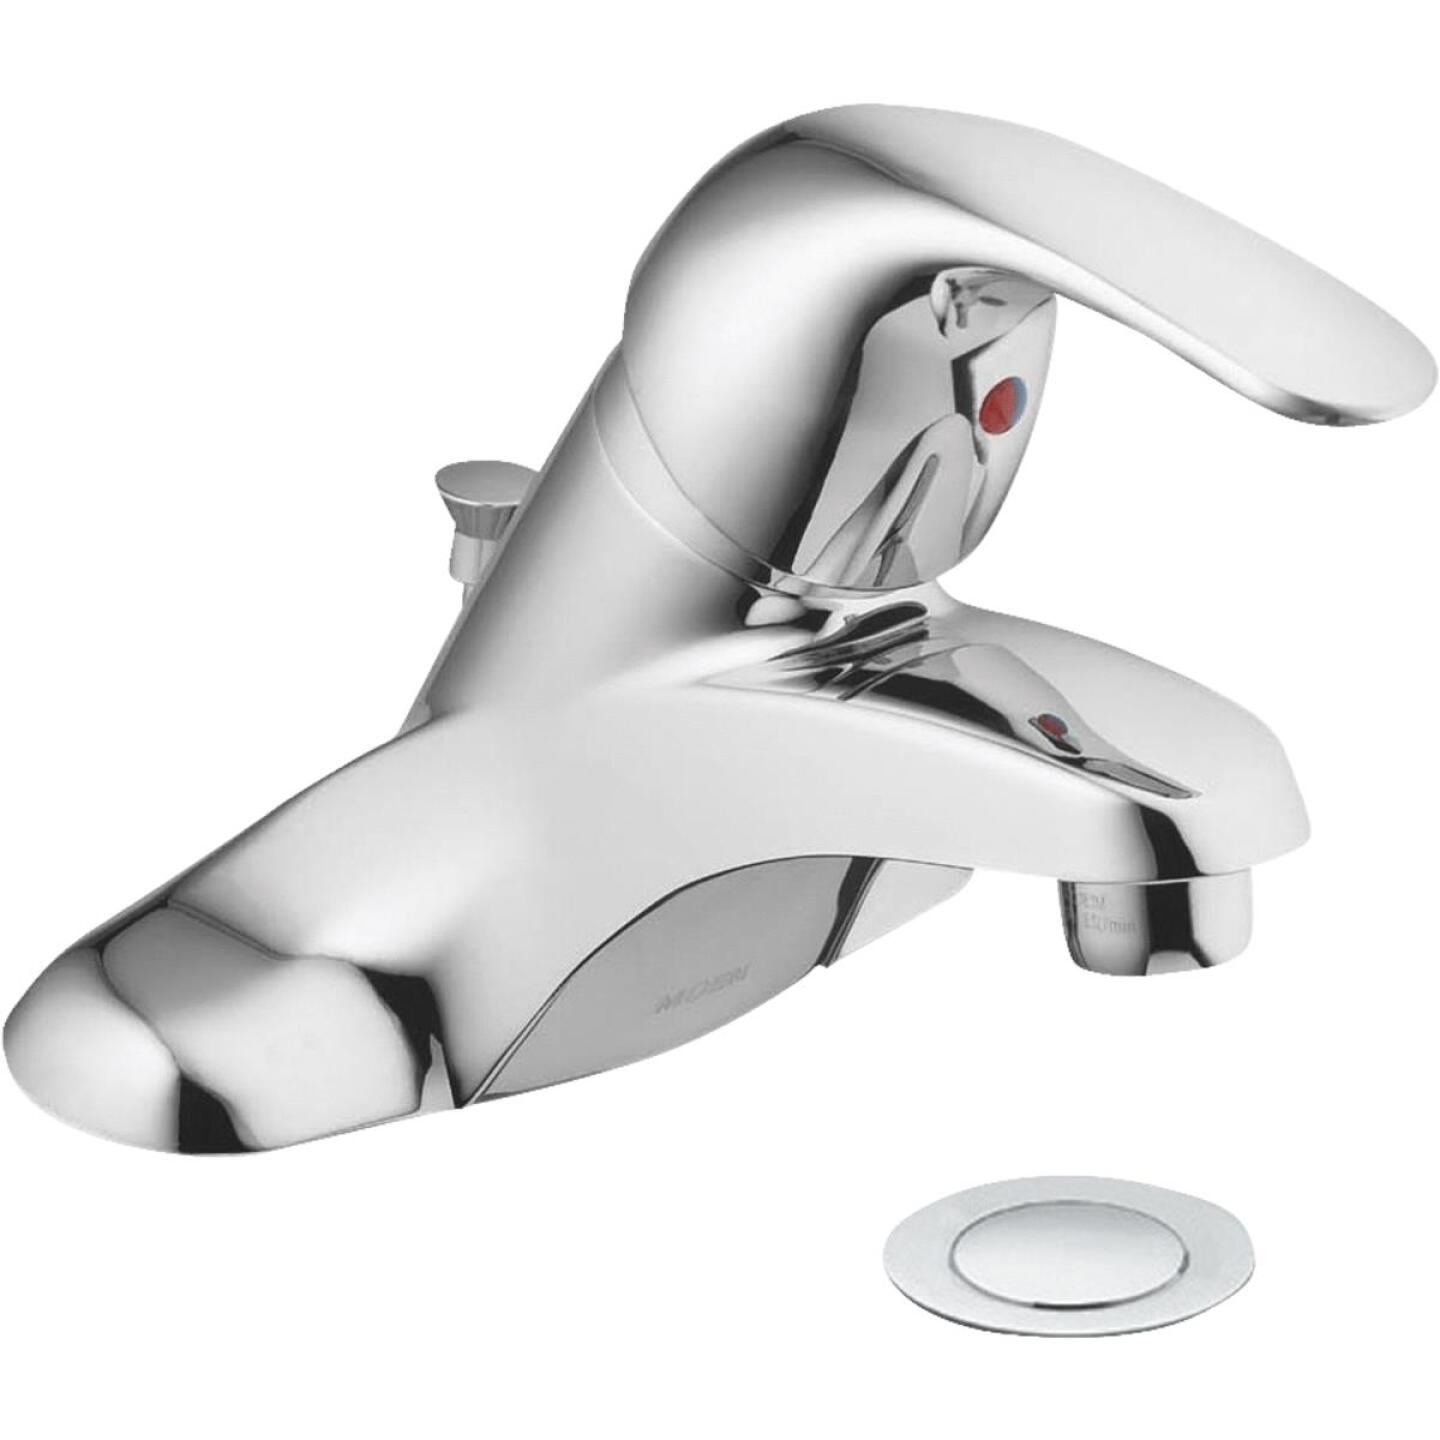 Moen Adler Chrome 1-Handle Lever 4 In. Centerset Bathroom Faucet with Pop-Up Image 3